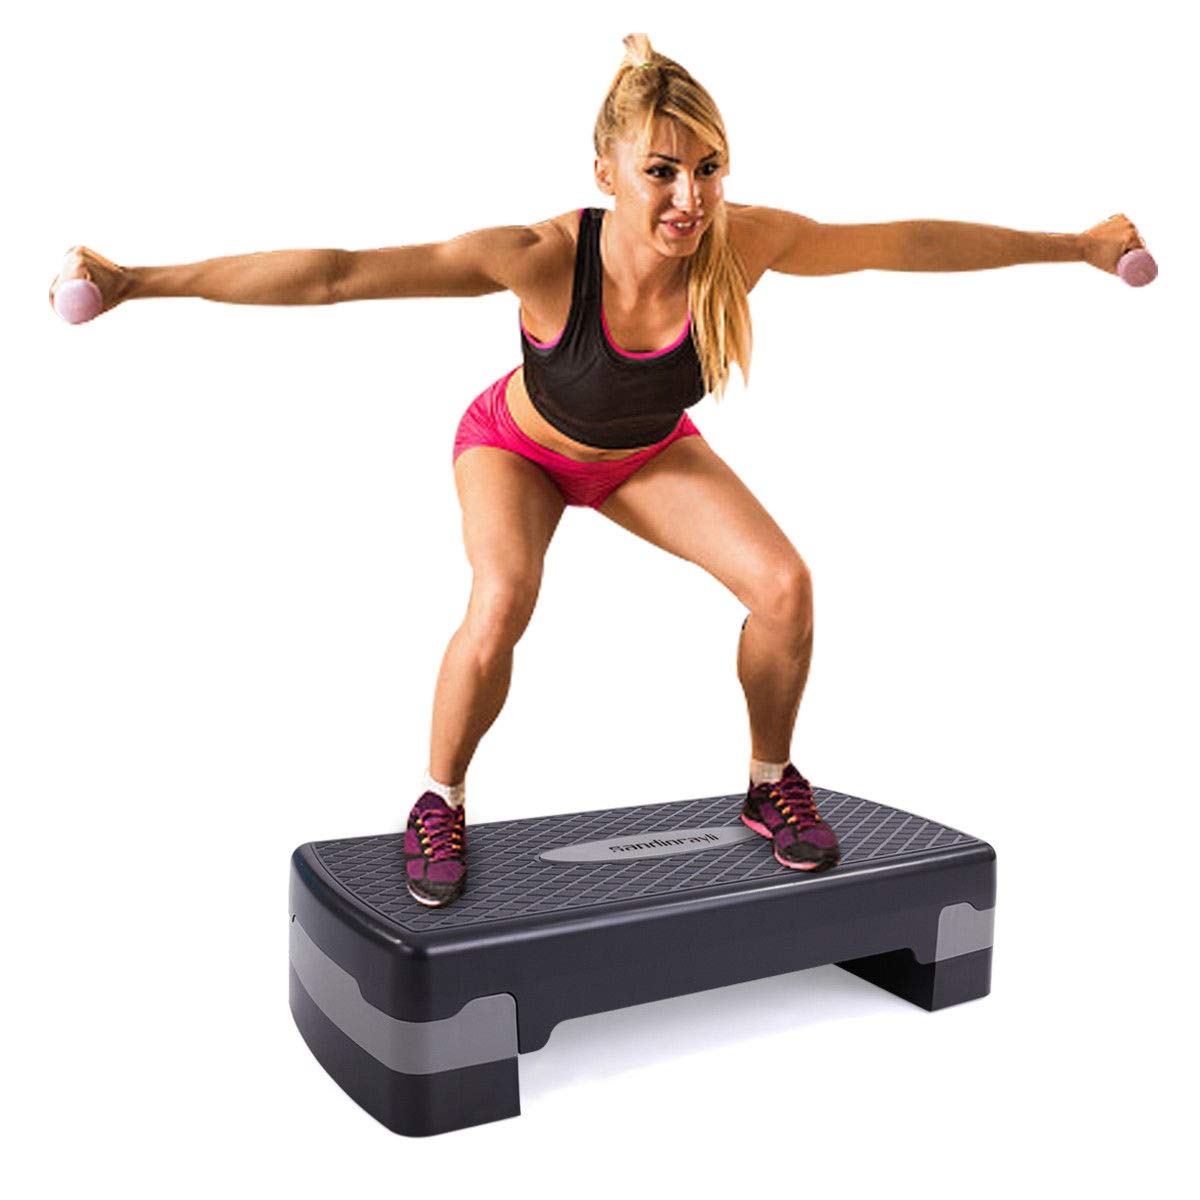 The Firm Body Sculpting System Stepper